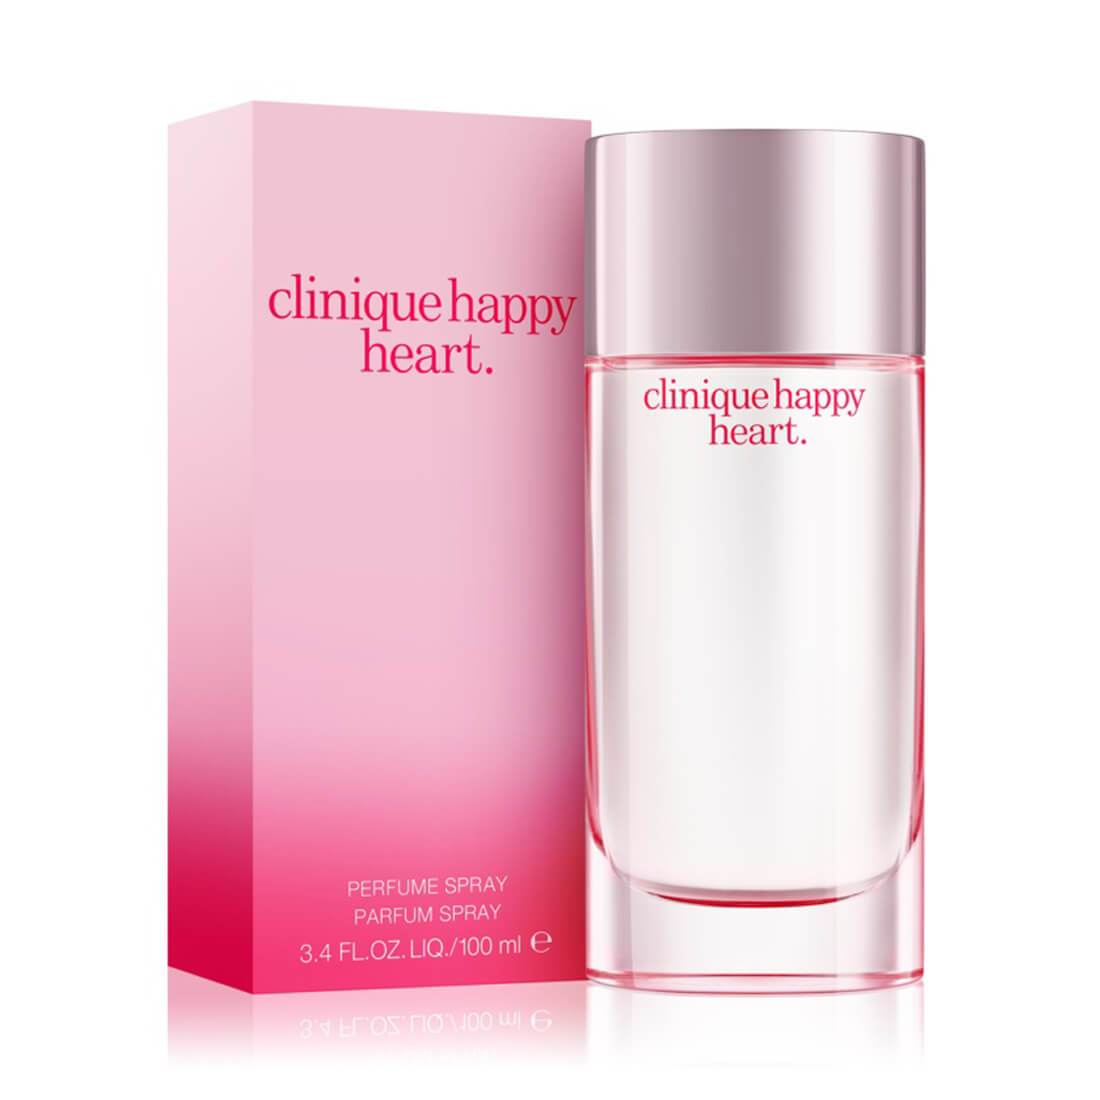 Clinique Happy Heart Eau De Perfume For Women - 100ml